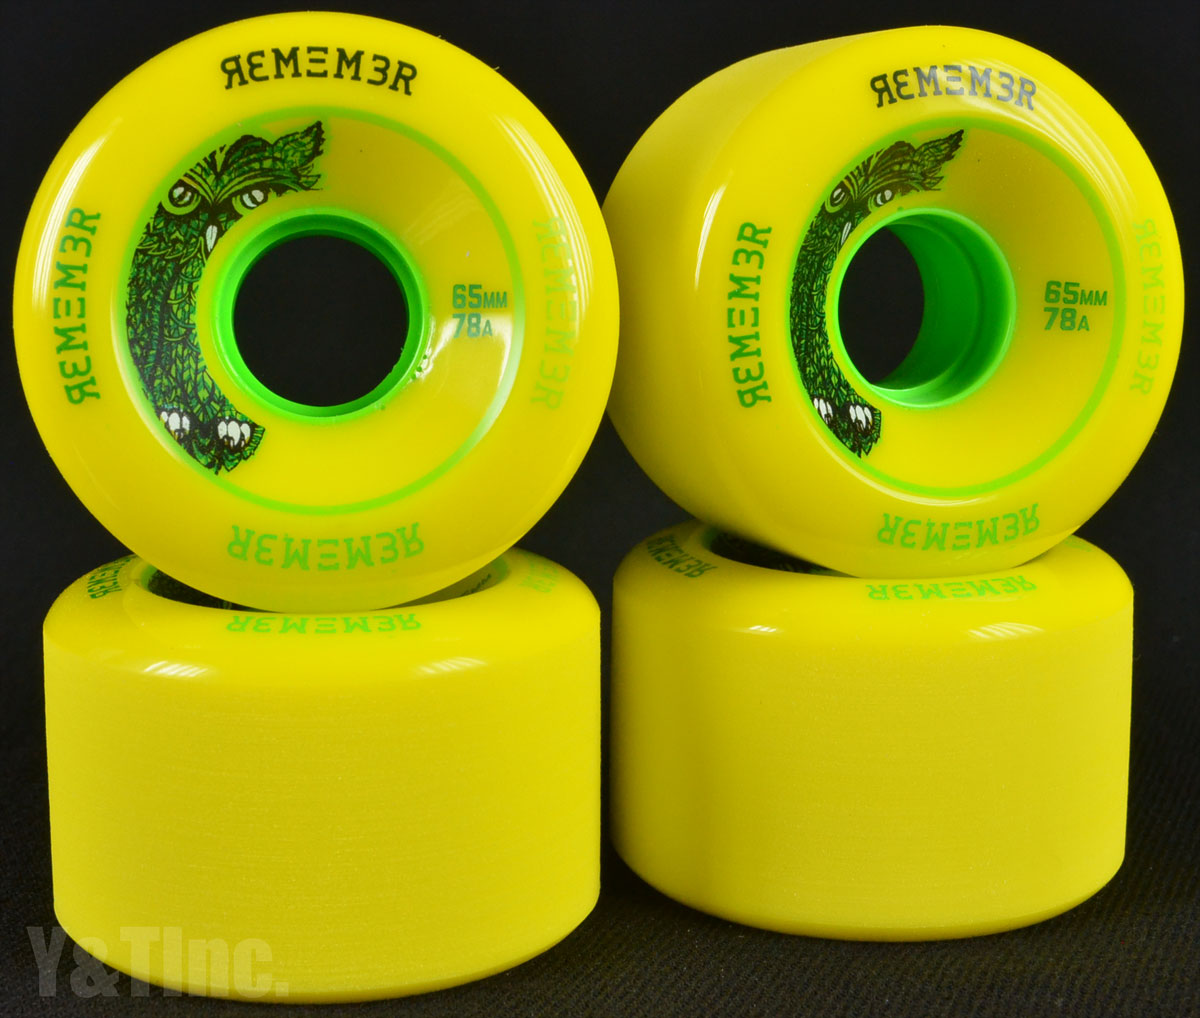 REMEMBER LiL Hoot 65mm 78a Yellow 1